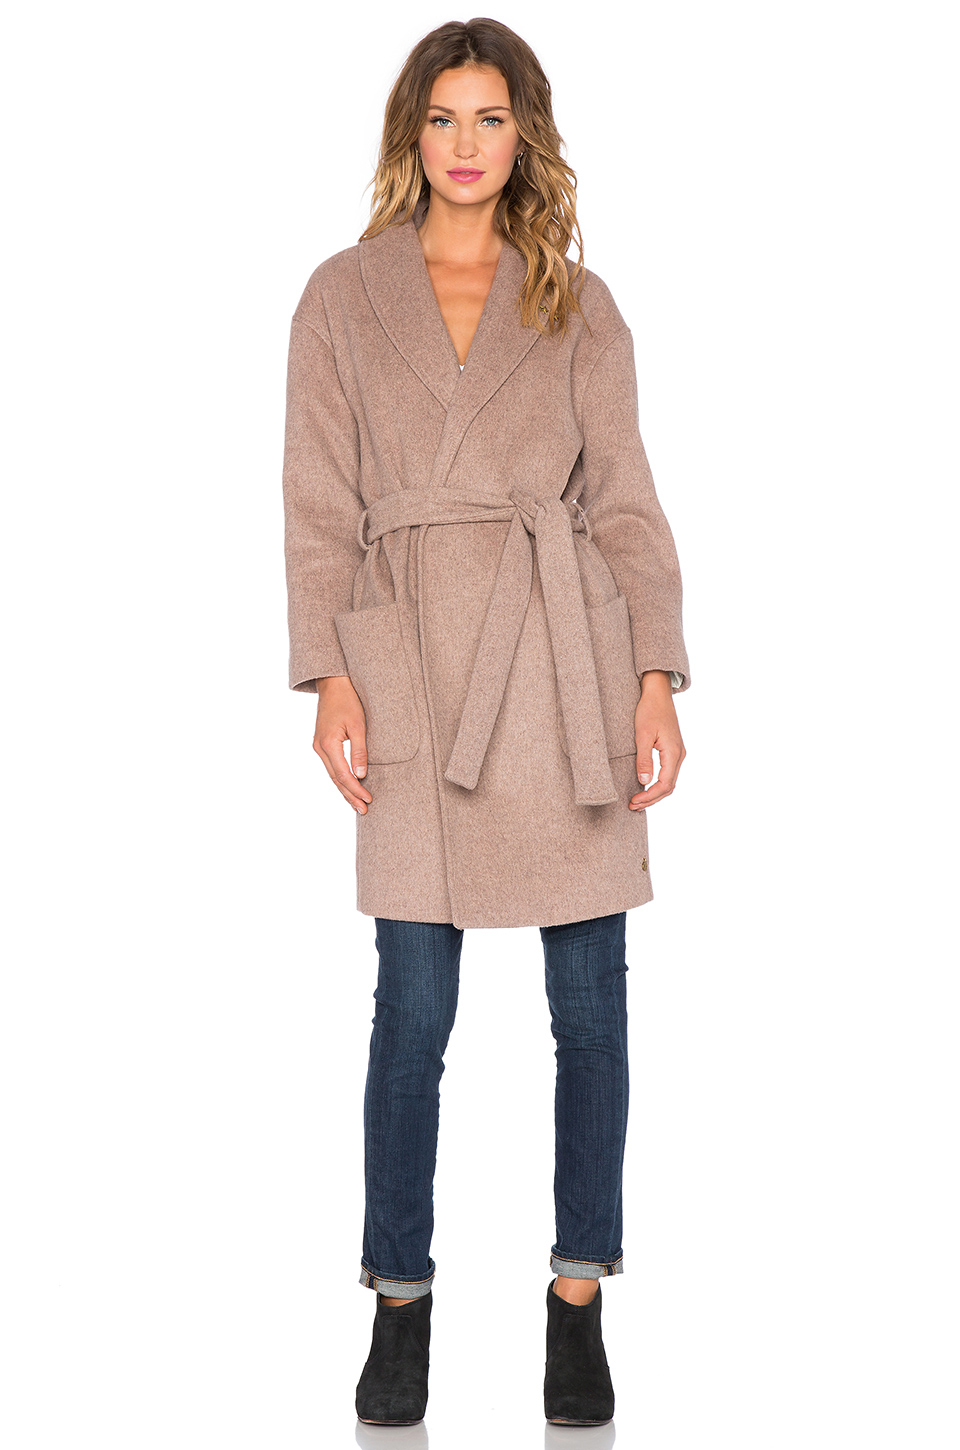 Lyst maison scotch wrap over wool blend robe jacket in pink for Maison